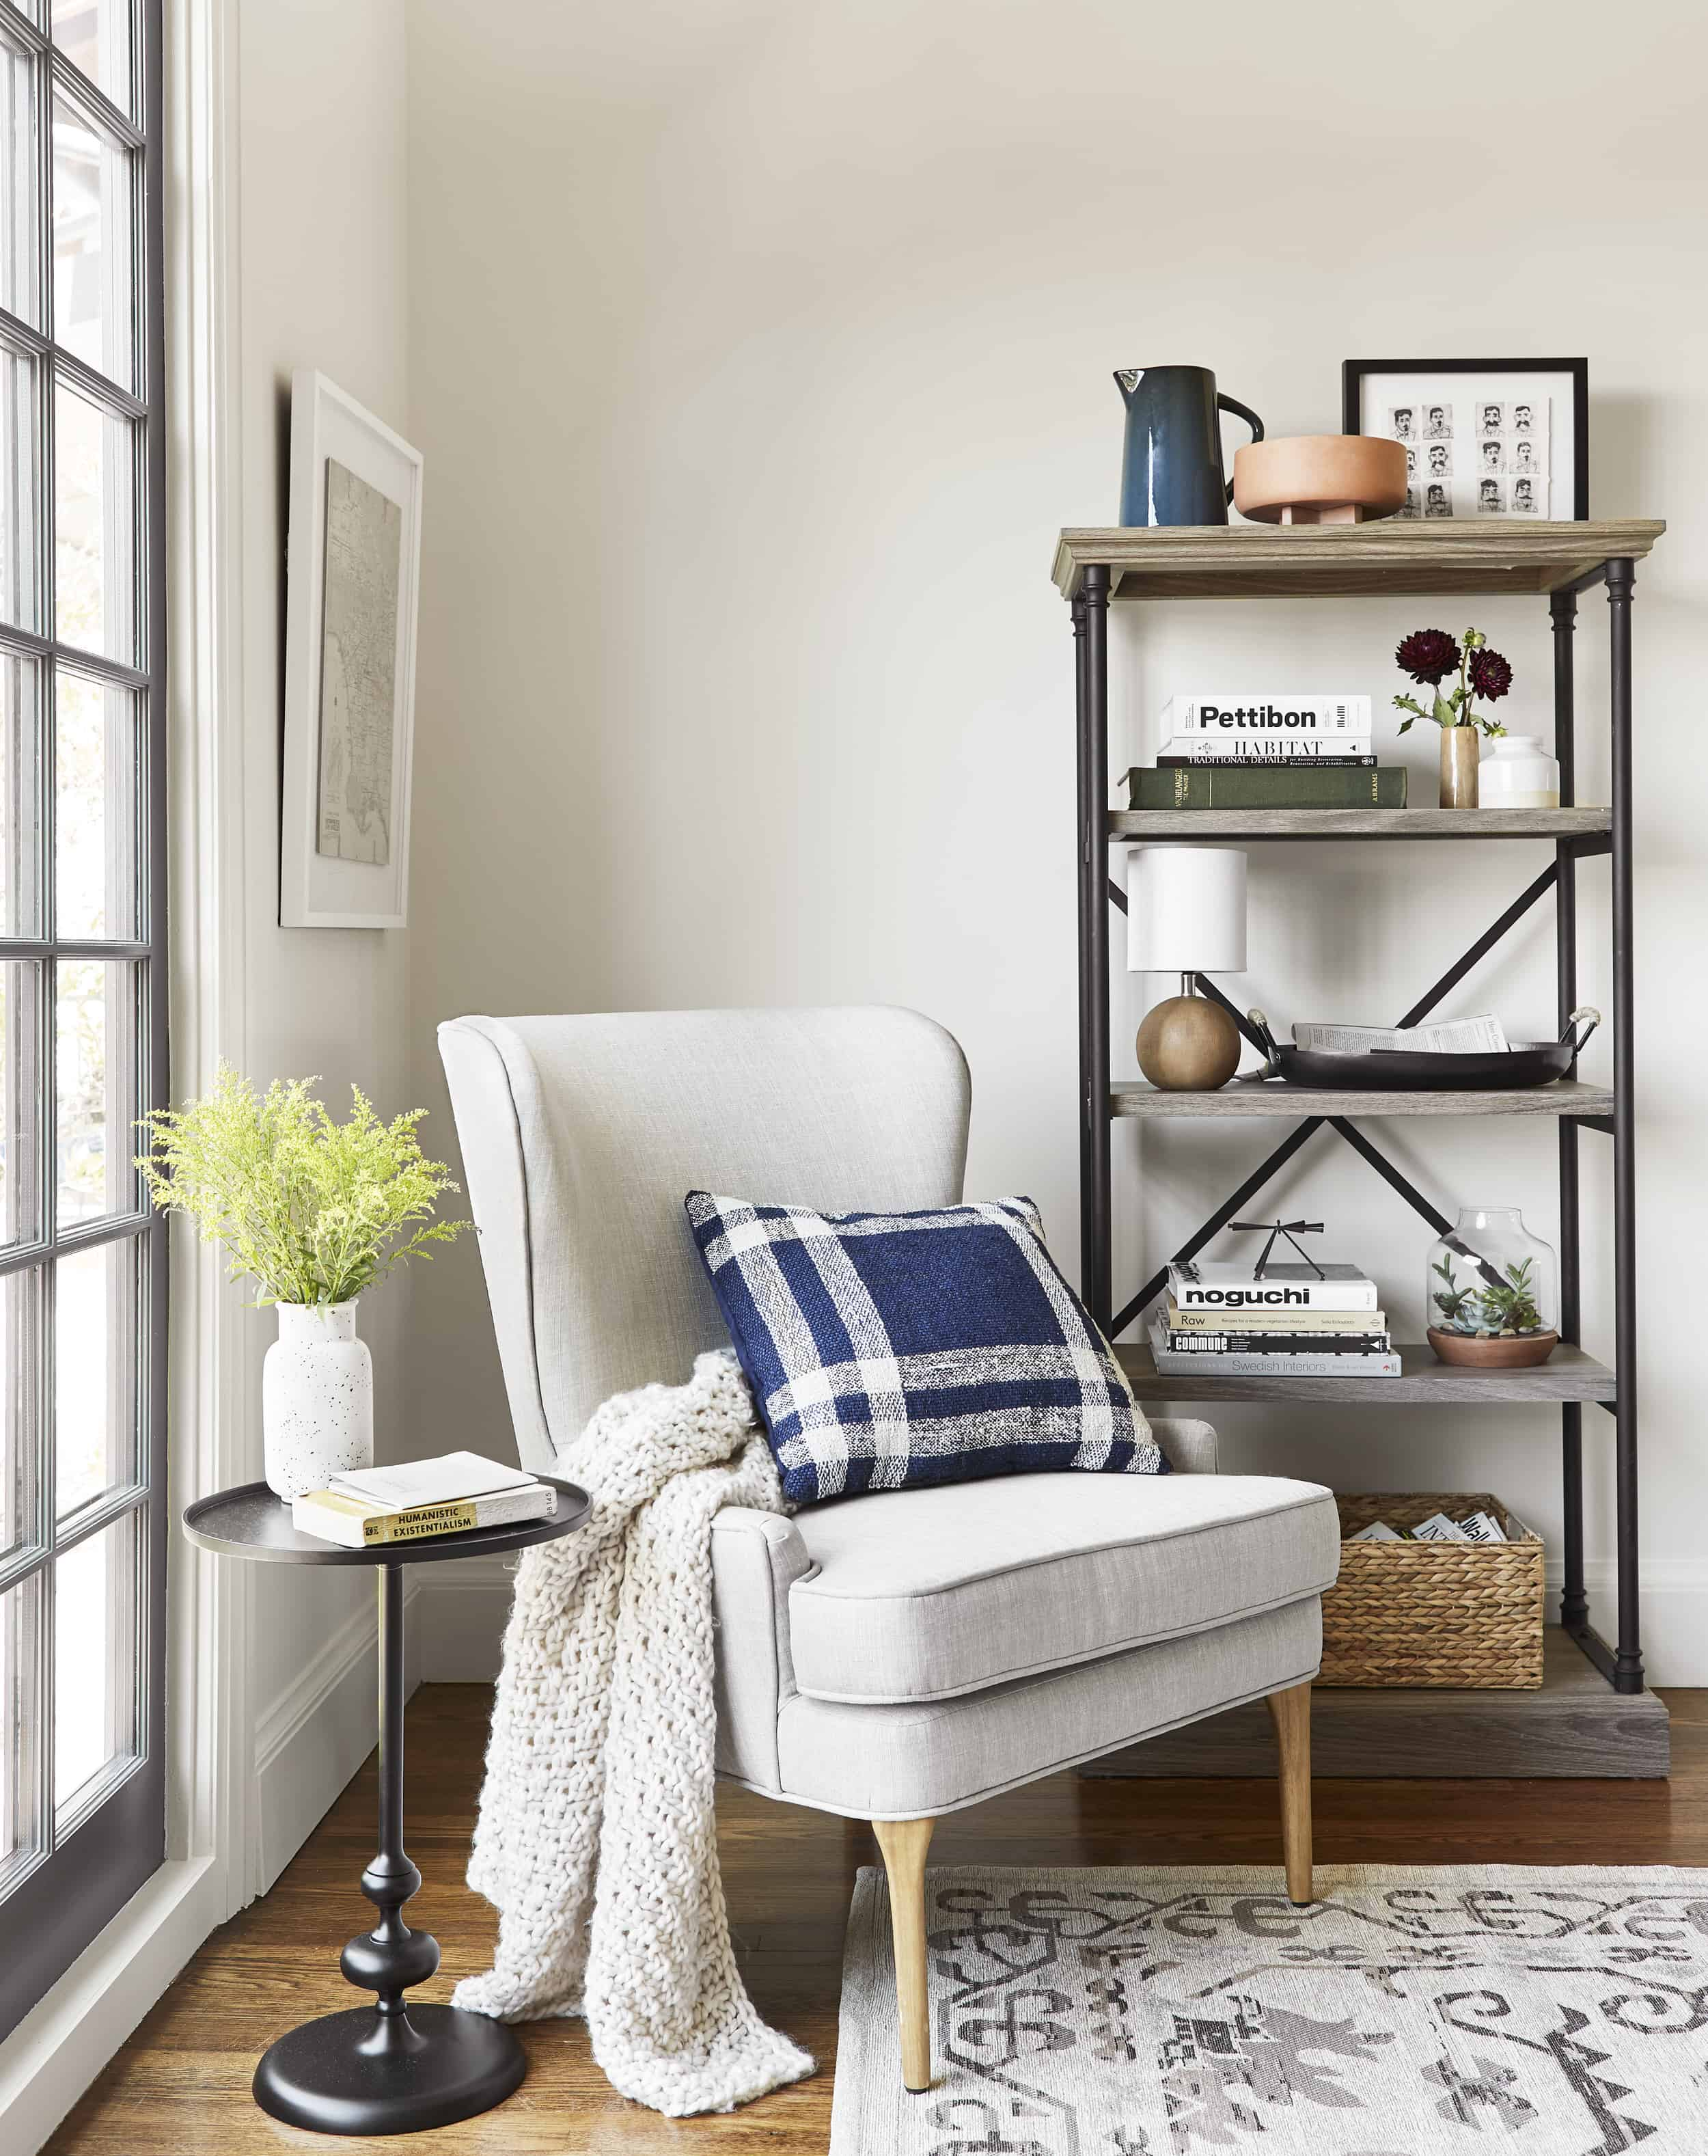 Emily Henderson Target Fall Product 2018 Threshold Traditional Cozy6